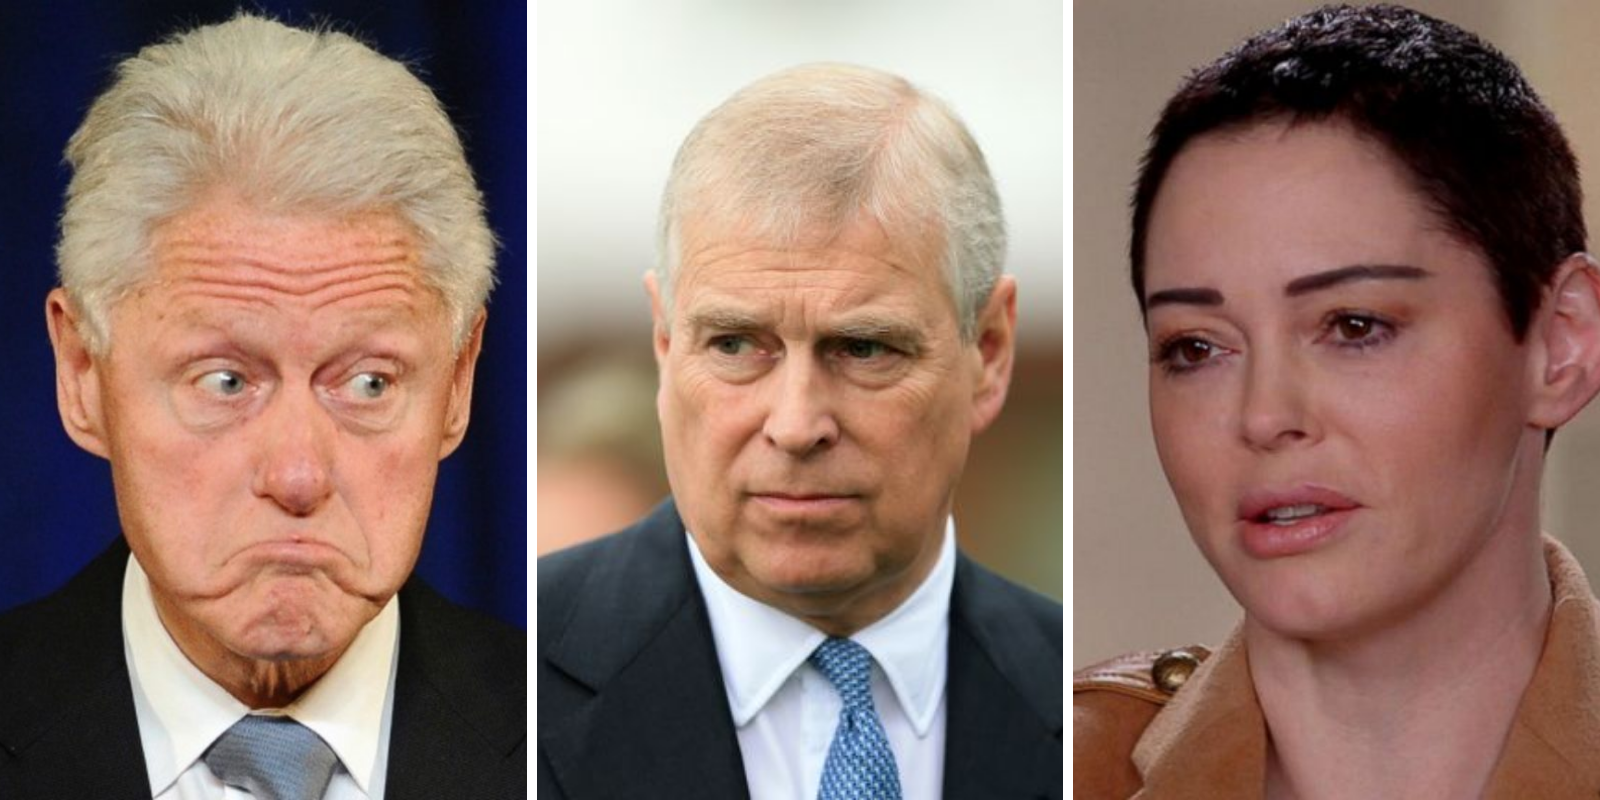 BREAKING: Rose McGowan calls for the arrest of Bill Clinton and Prince Andrew